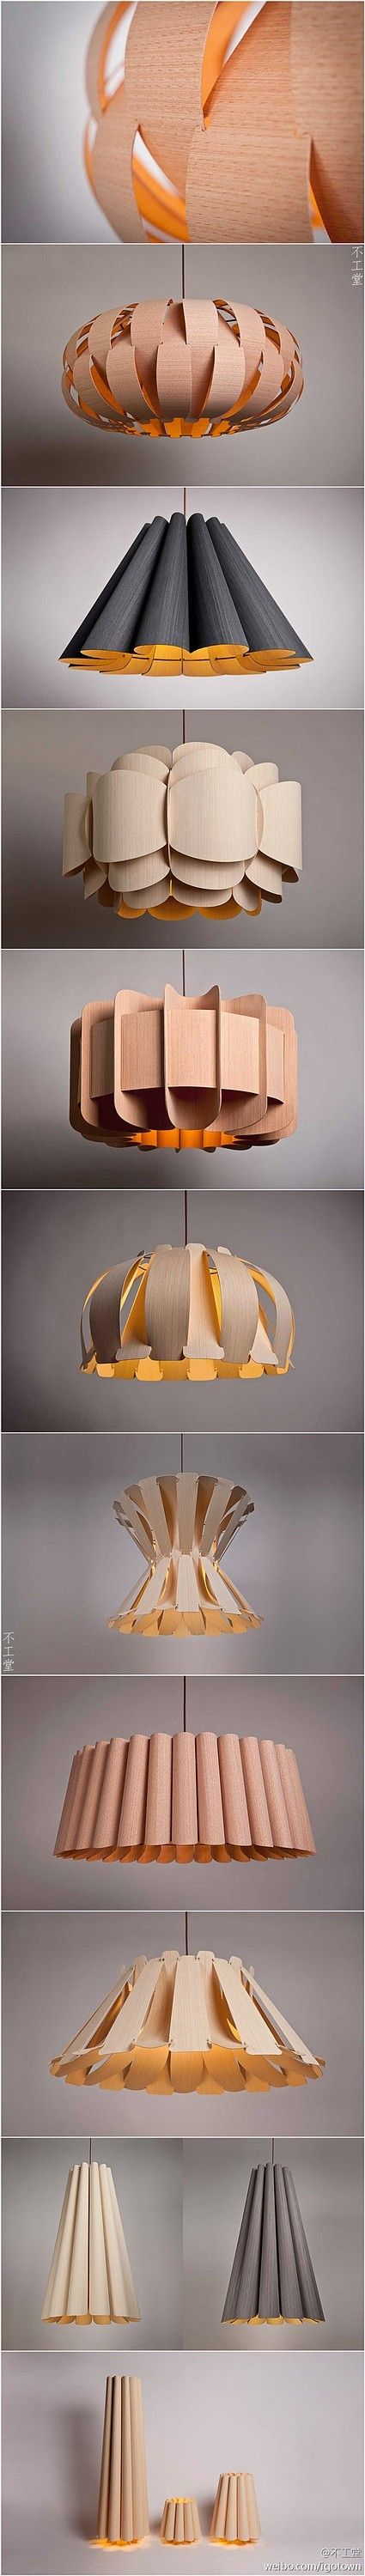 25 Beautiful DIY Wood Lamps And Chandeliers That Will Light Up Your Home-homesthetics (7)